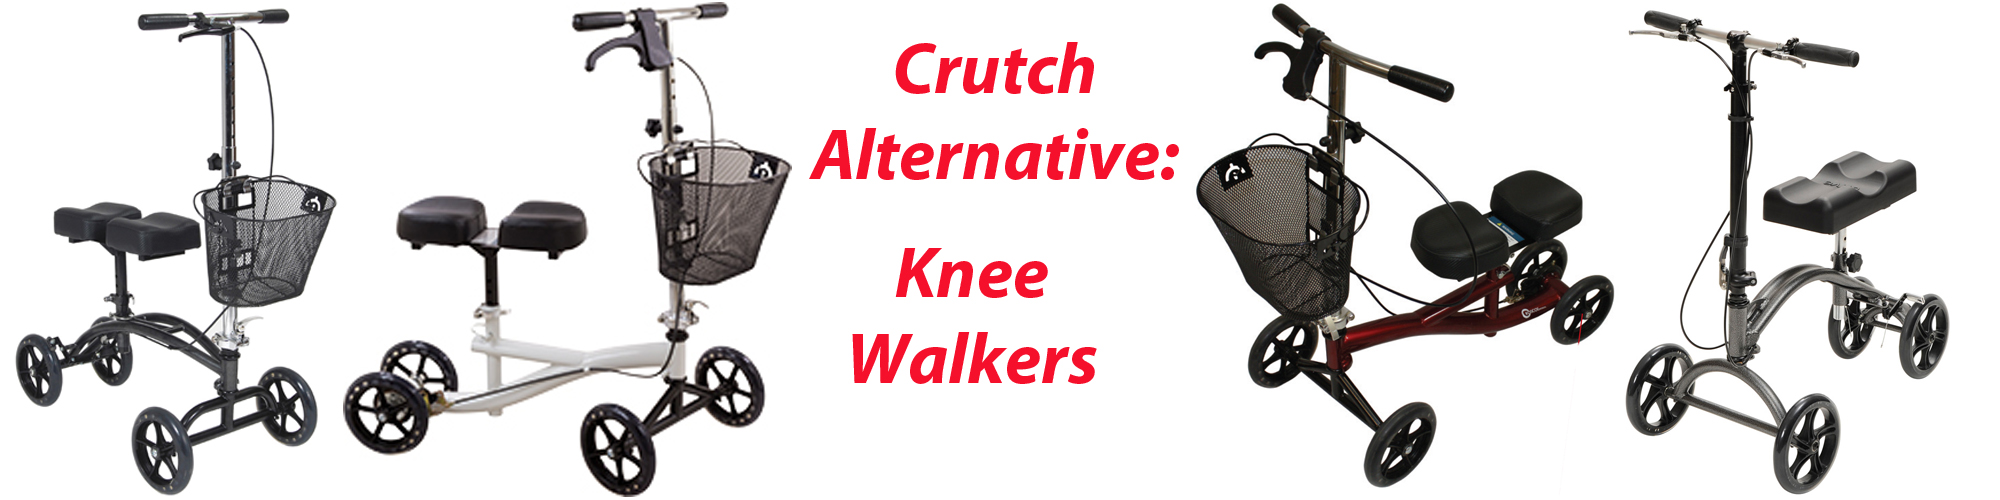 Types of Knee Walkers